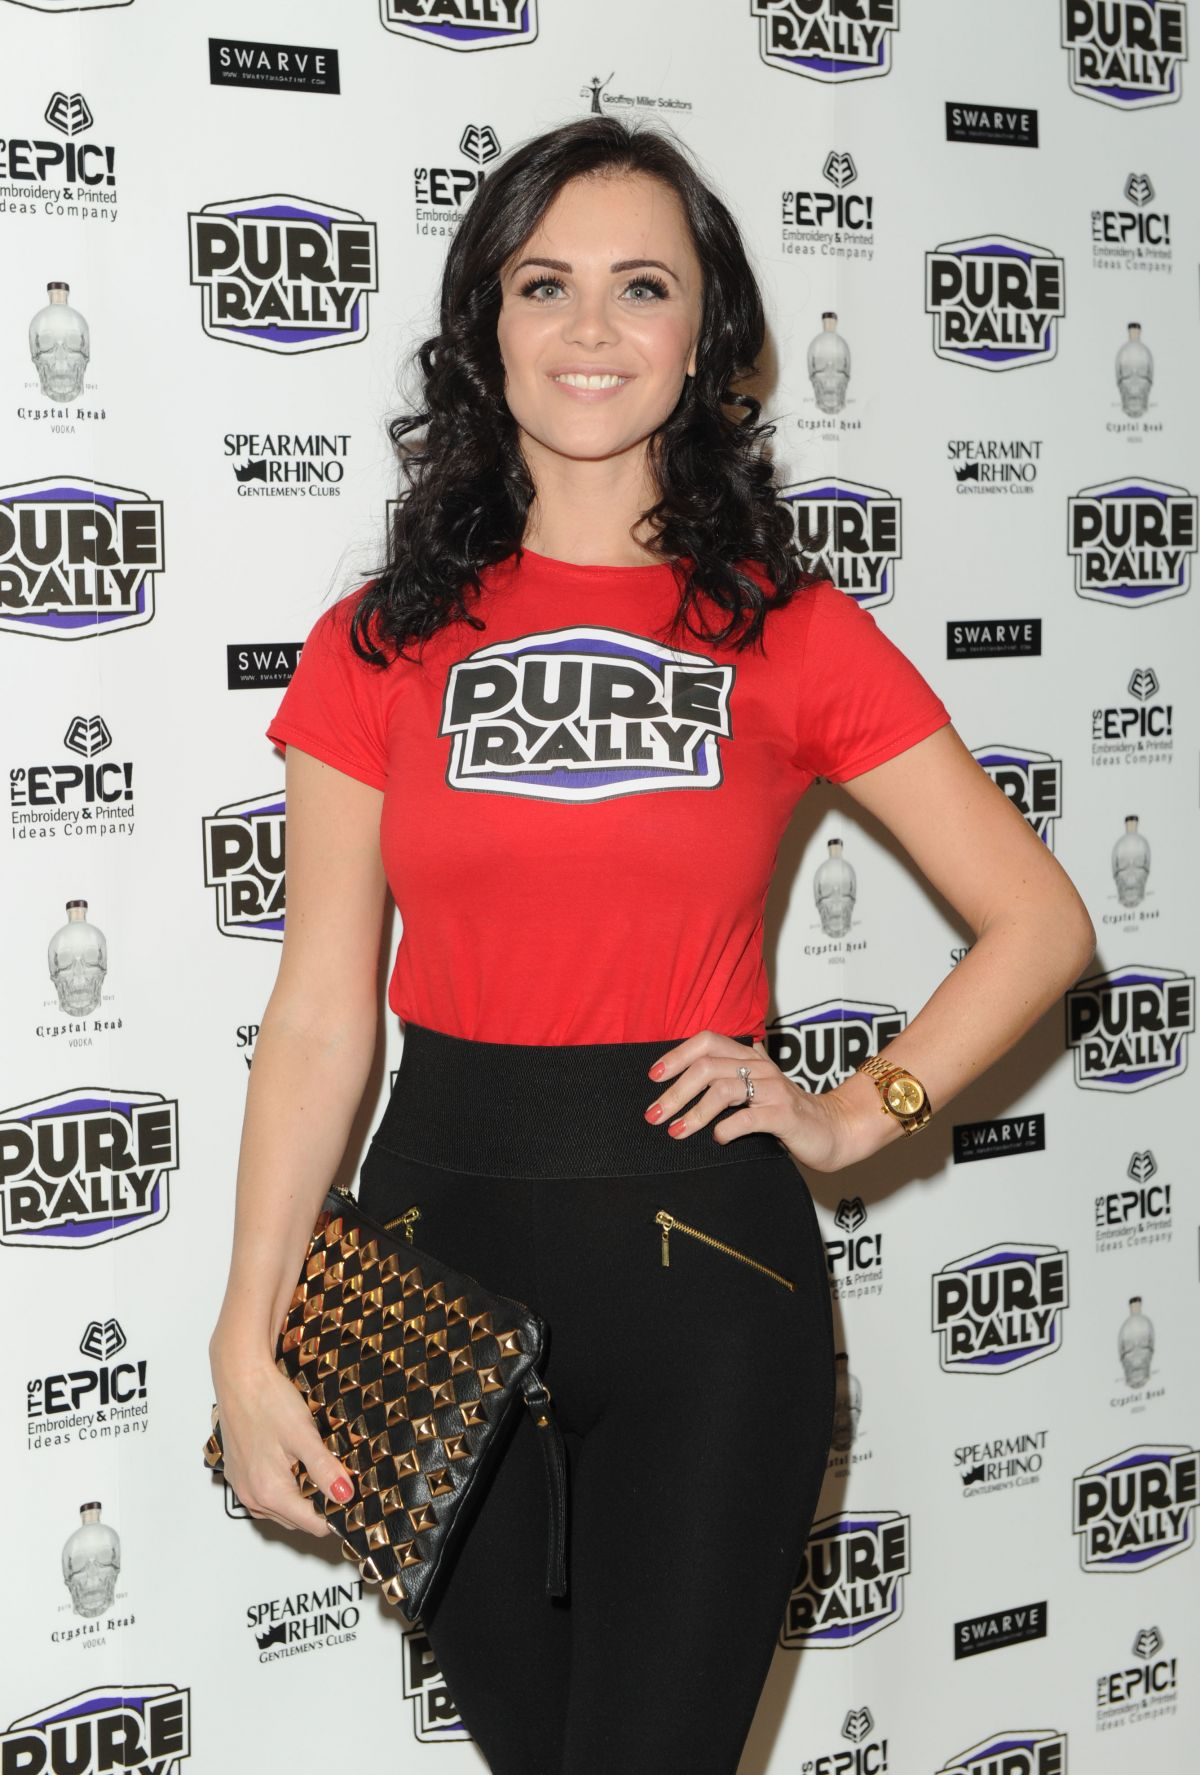 EMMA GLOVER at Pure Rally Event at Mayfair in London